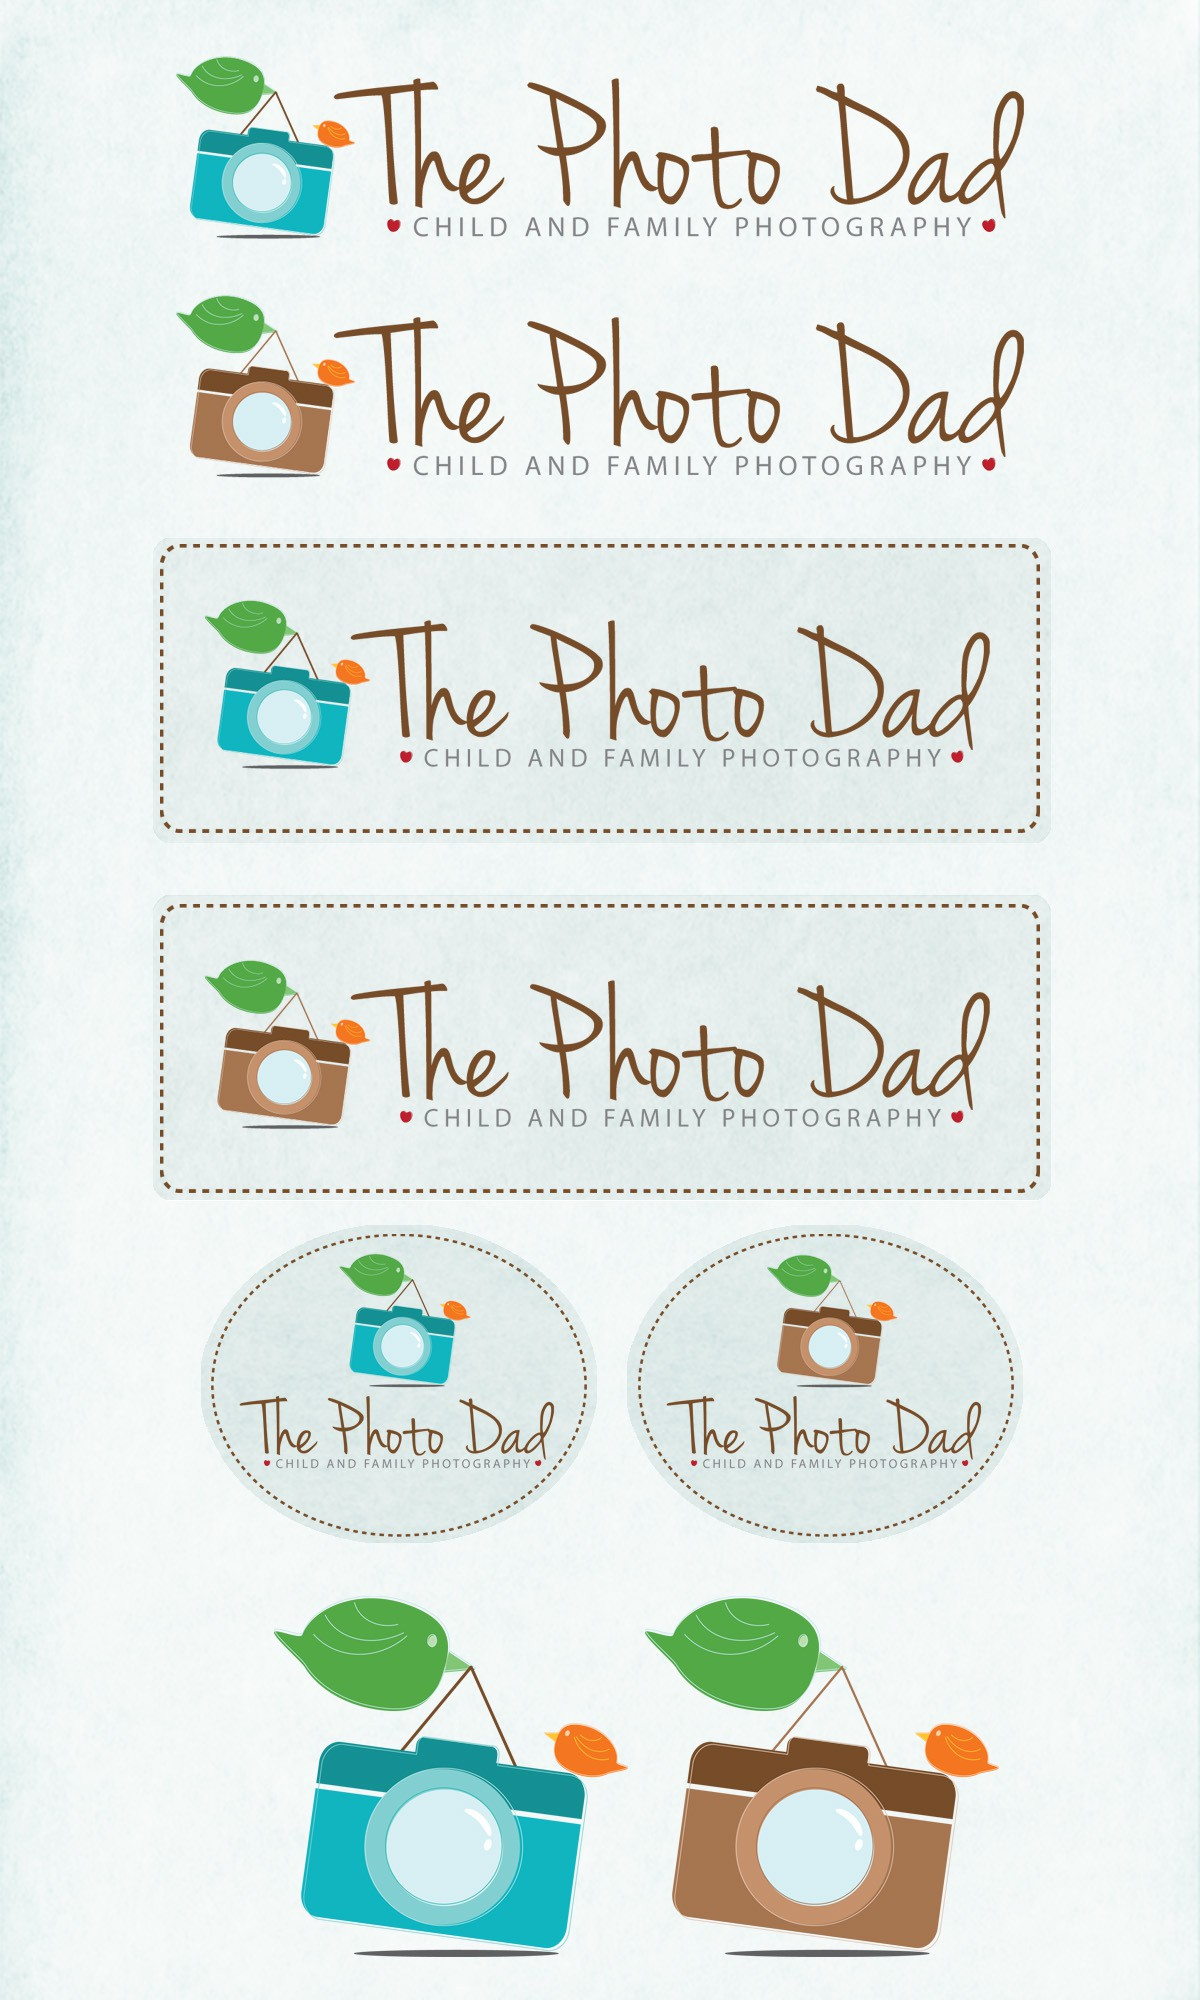 logo for The Photo Dad